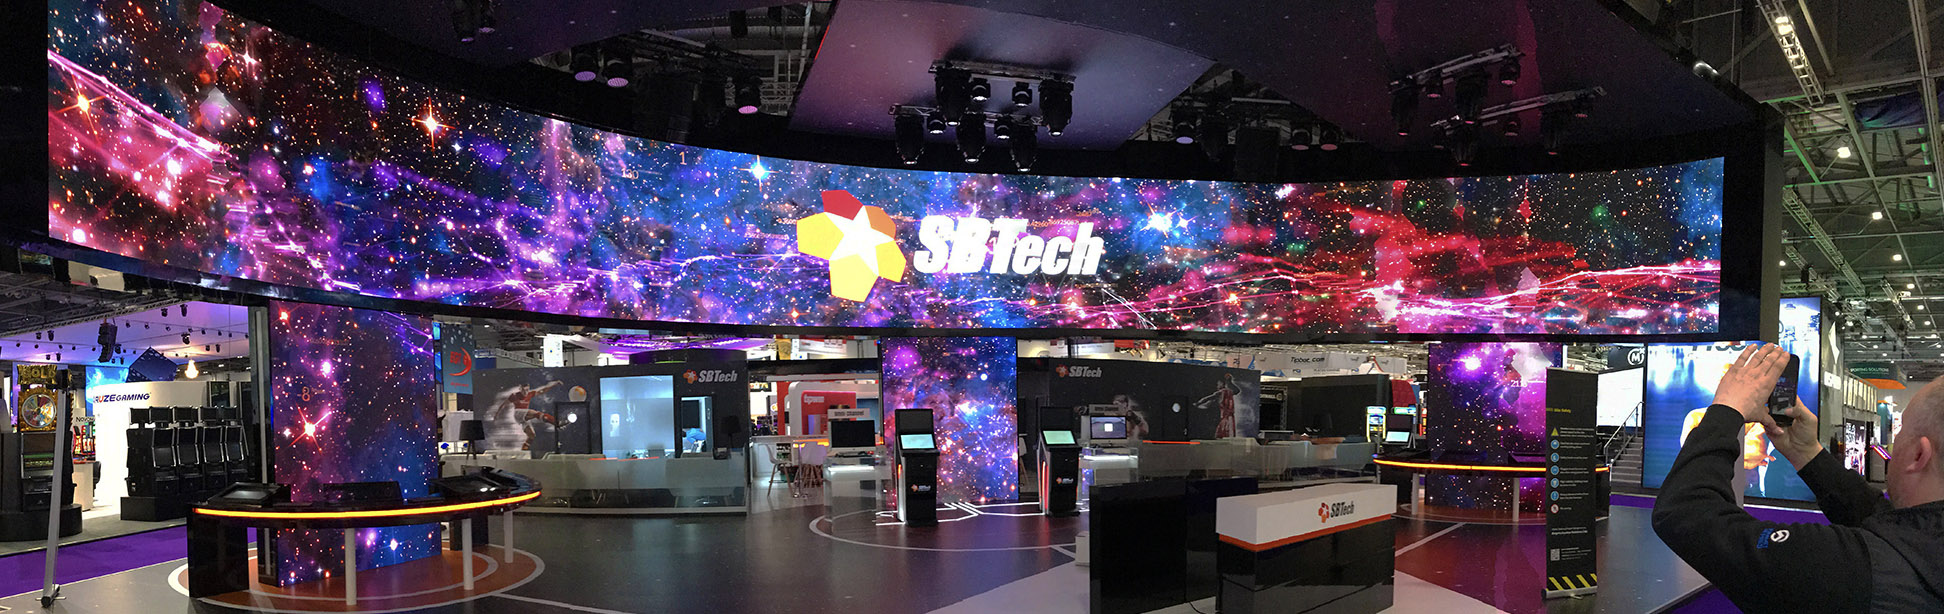 Exhibition Stand Hire York : Yslv led screen hire big event av